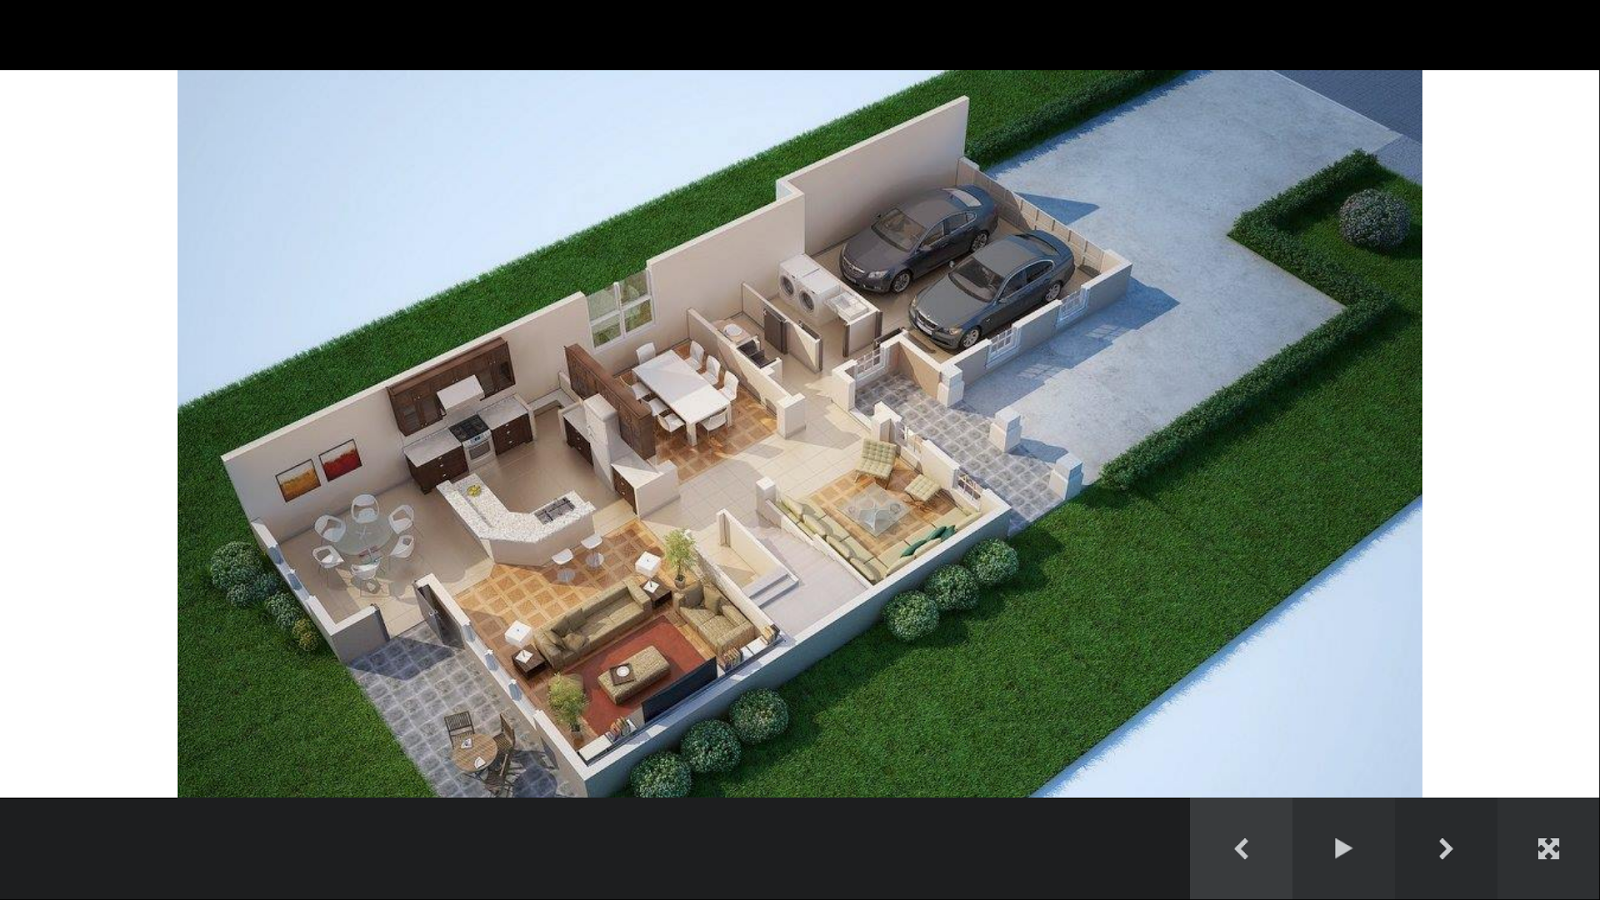 3d house plans android apps on google play for House plan 3d model